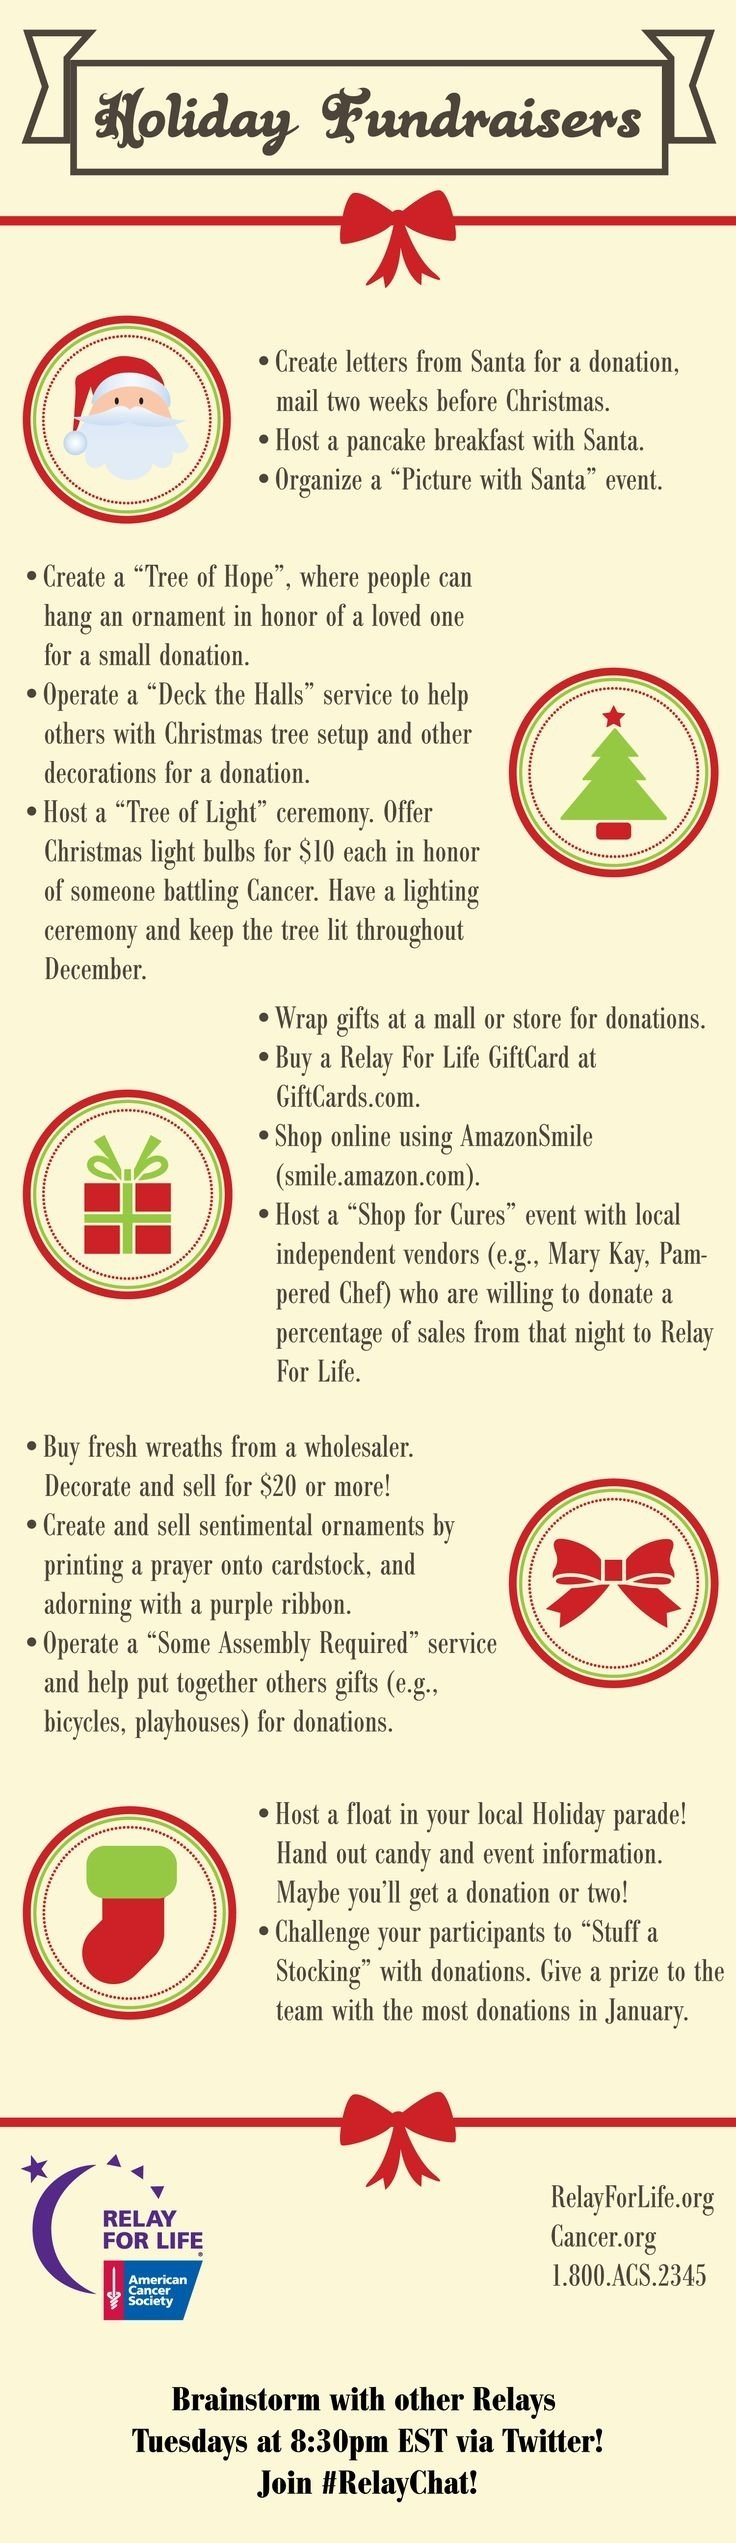 10 Fabulous Ideas For Fundraising For School 73 best student fundraising ideas images on pinterest fundraising 10 2021